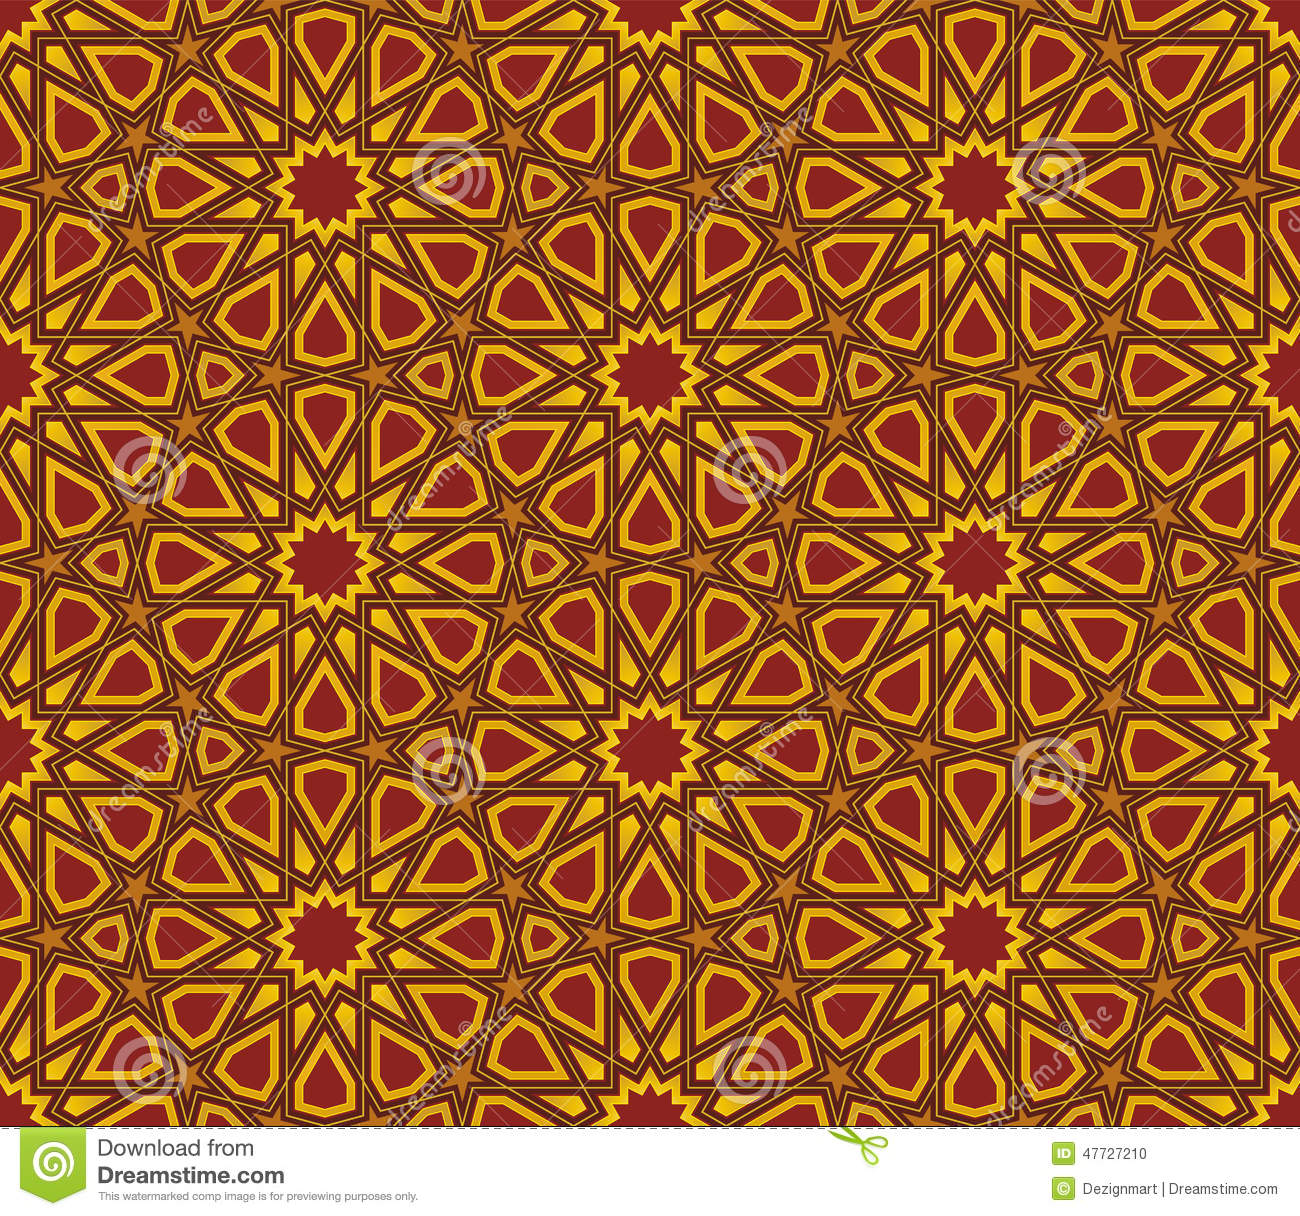 Islamic Star Pattern Background Stock Vector - Image: 47727210